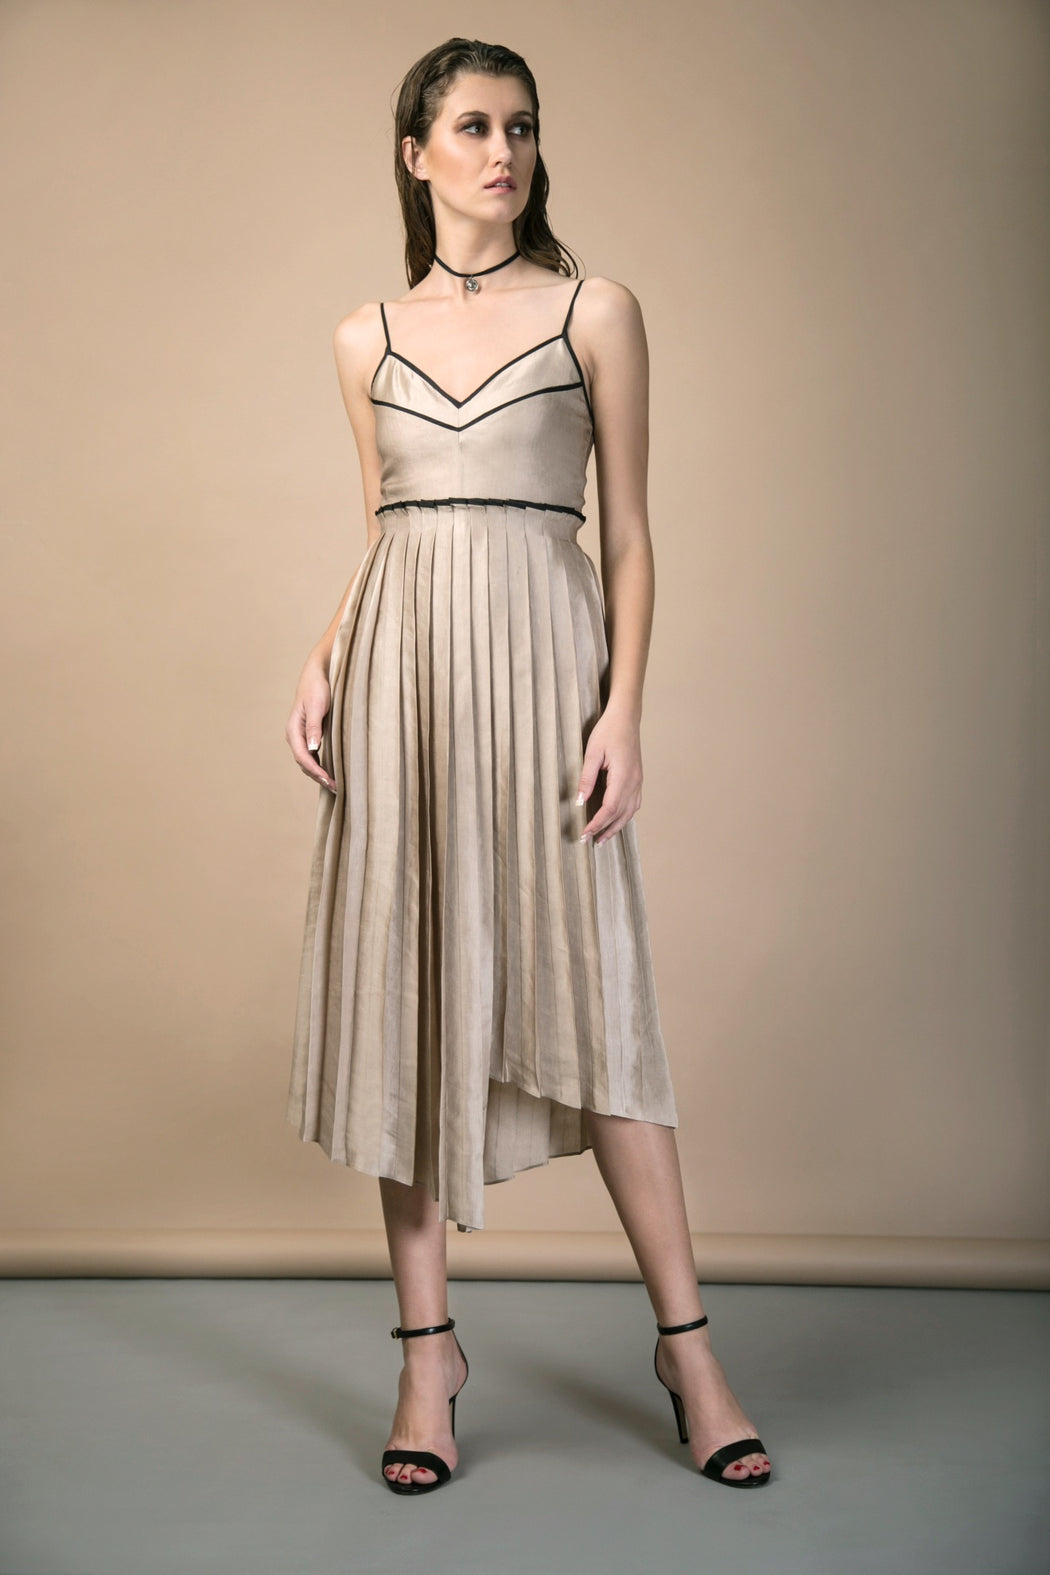 BIRDWALK PLEATED ASYMMETRIC DRESS